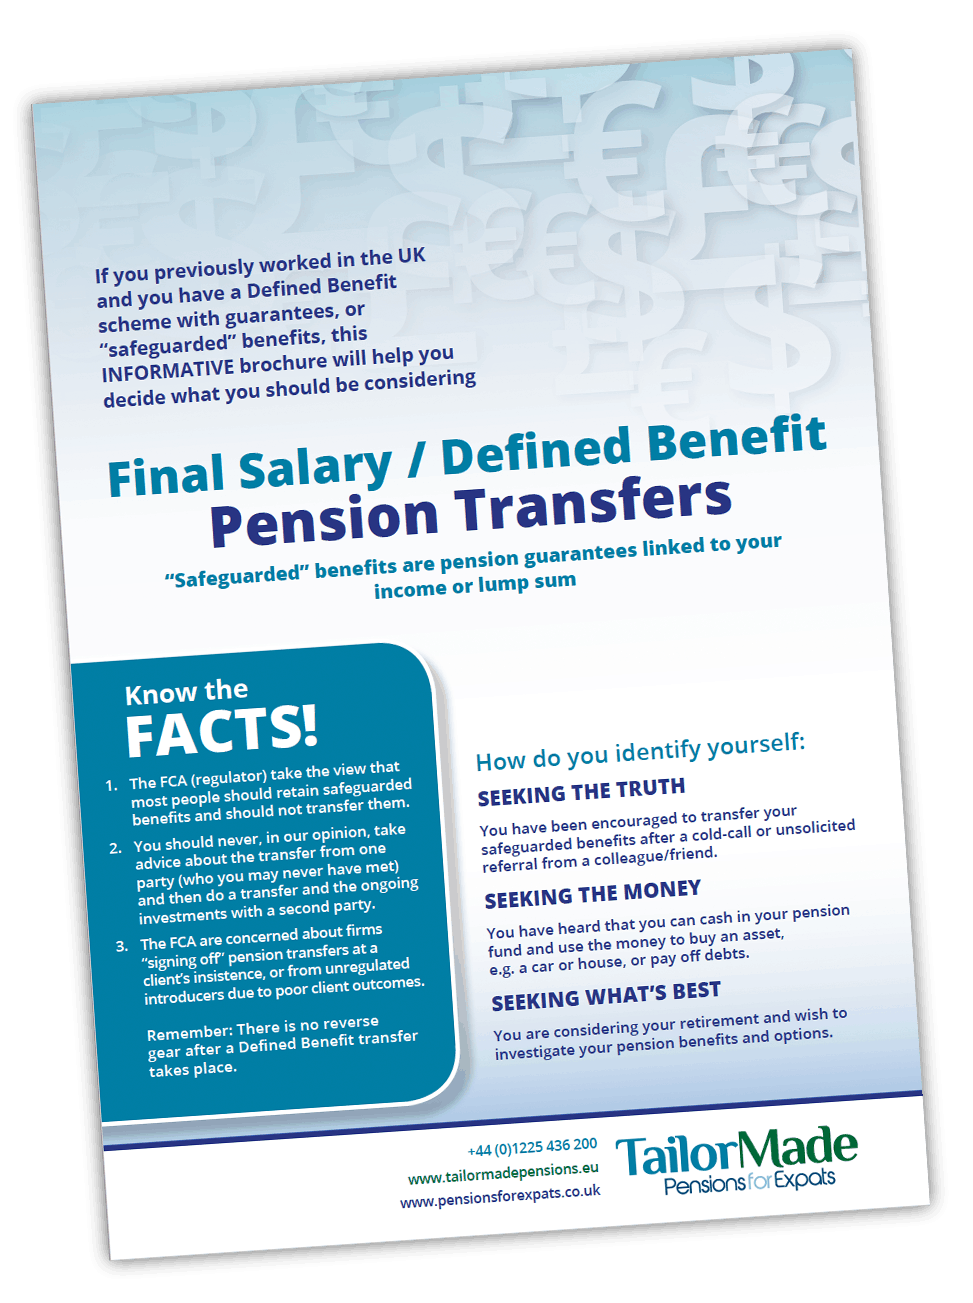 British Pensions Defined Benefit Transfers Information For Cyprus Brochure